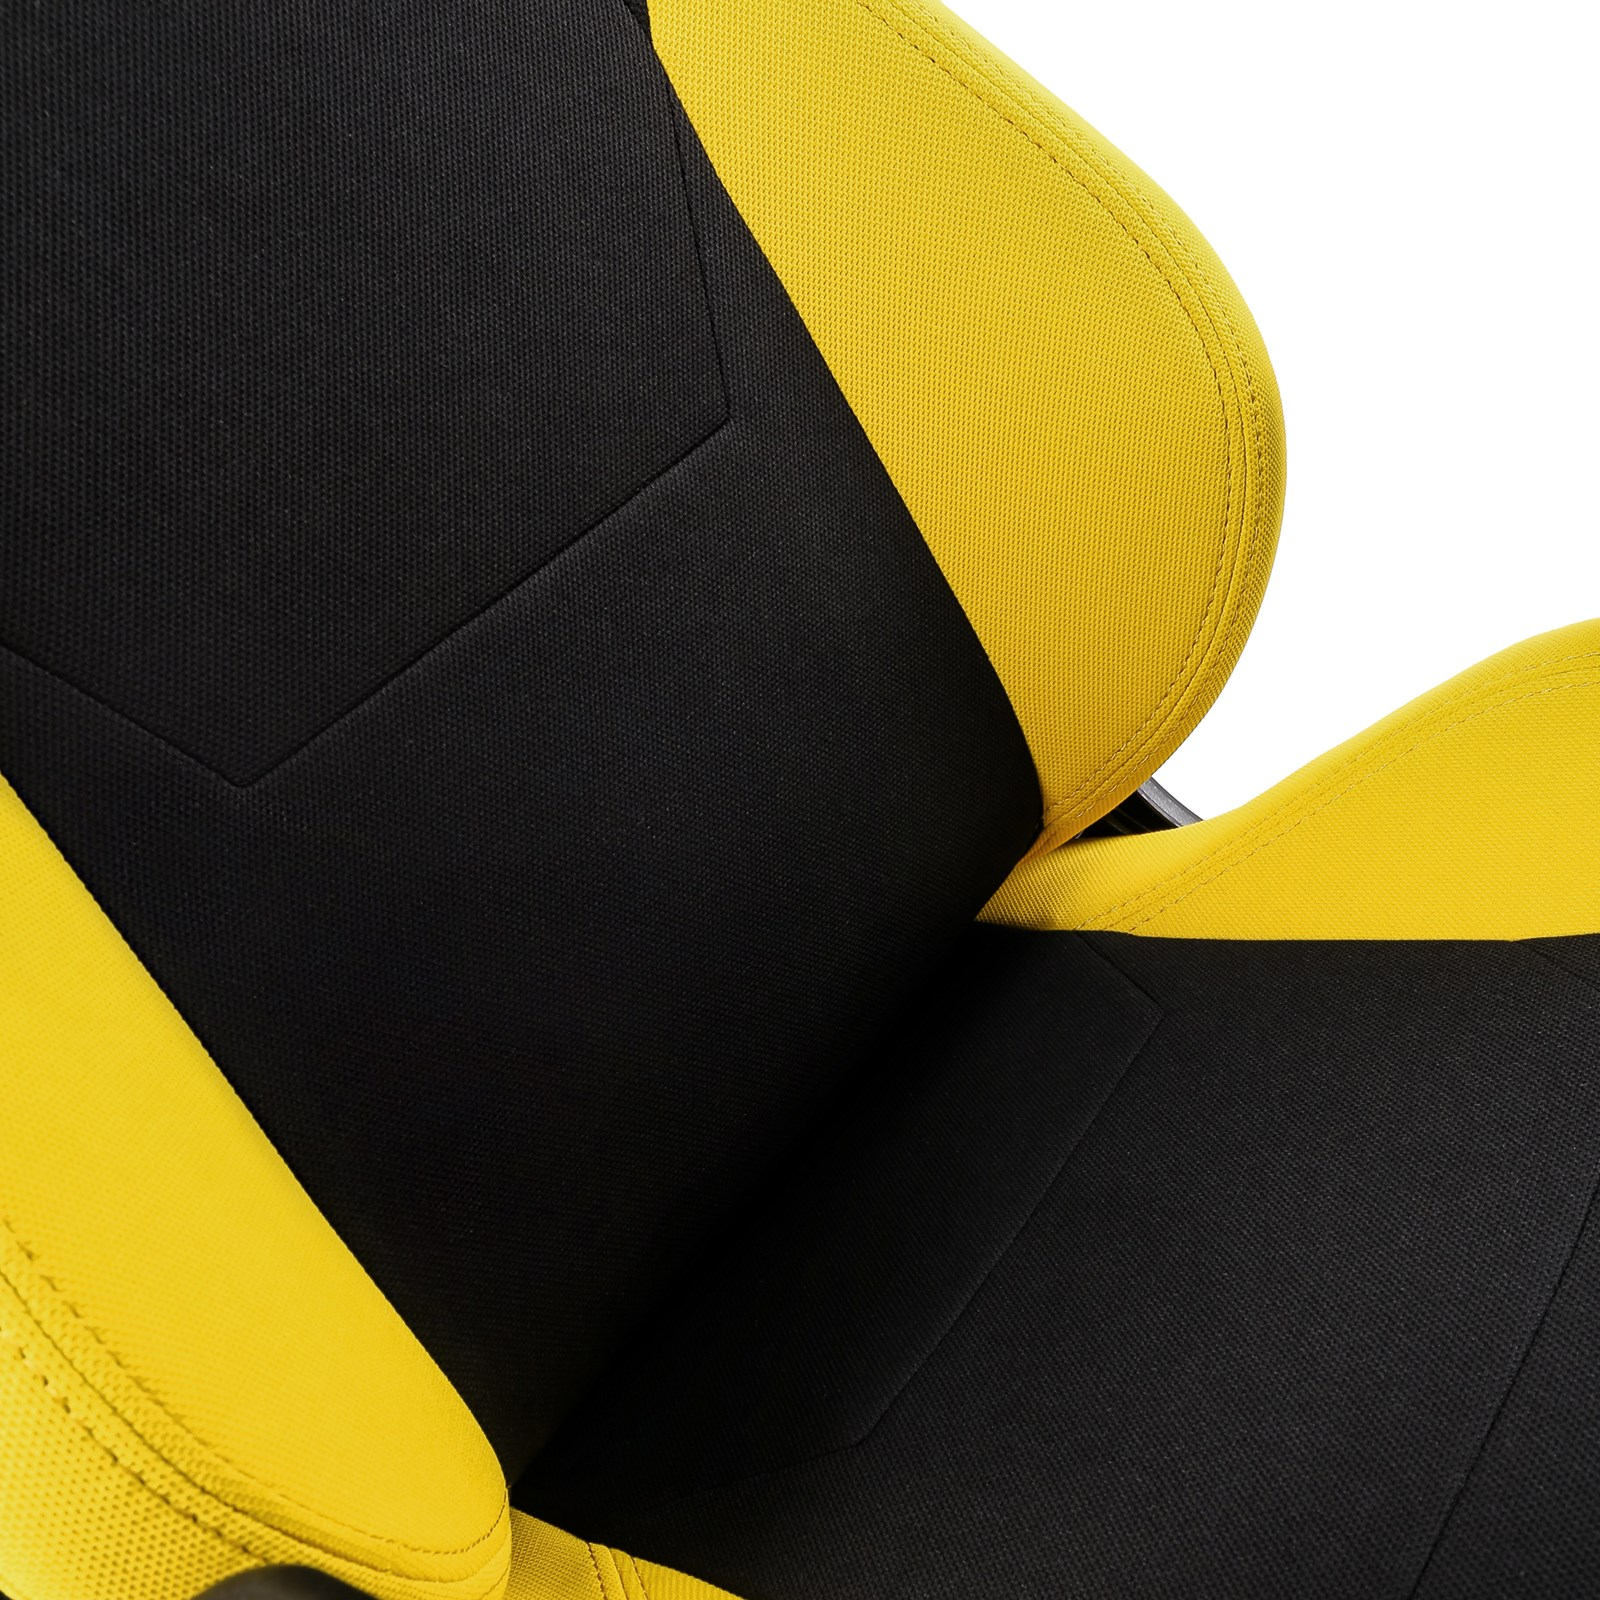 Nitro Concepts S300 Fabric Gaming Chair Astral Yellow